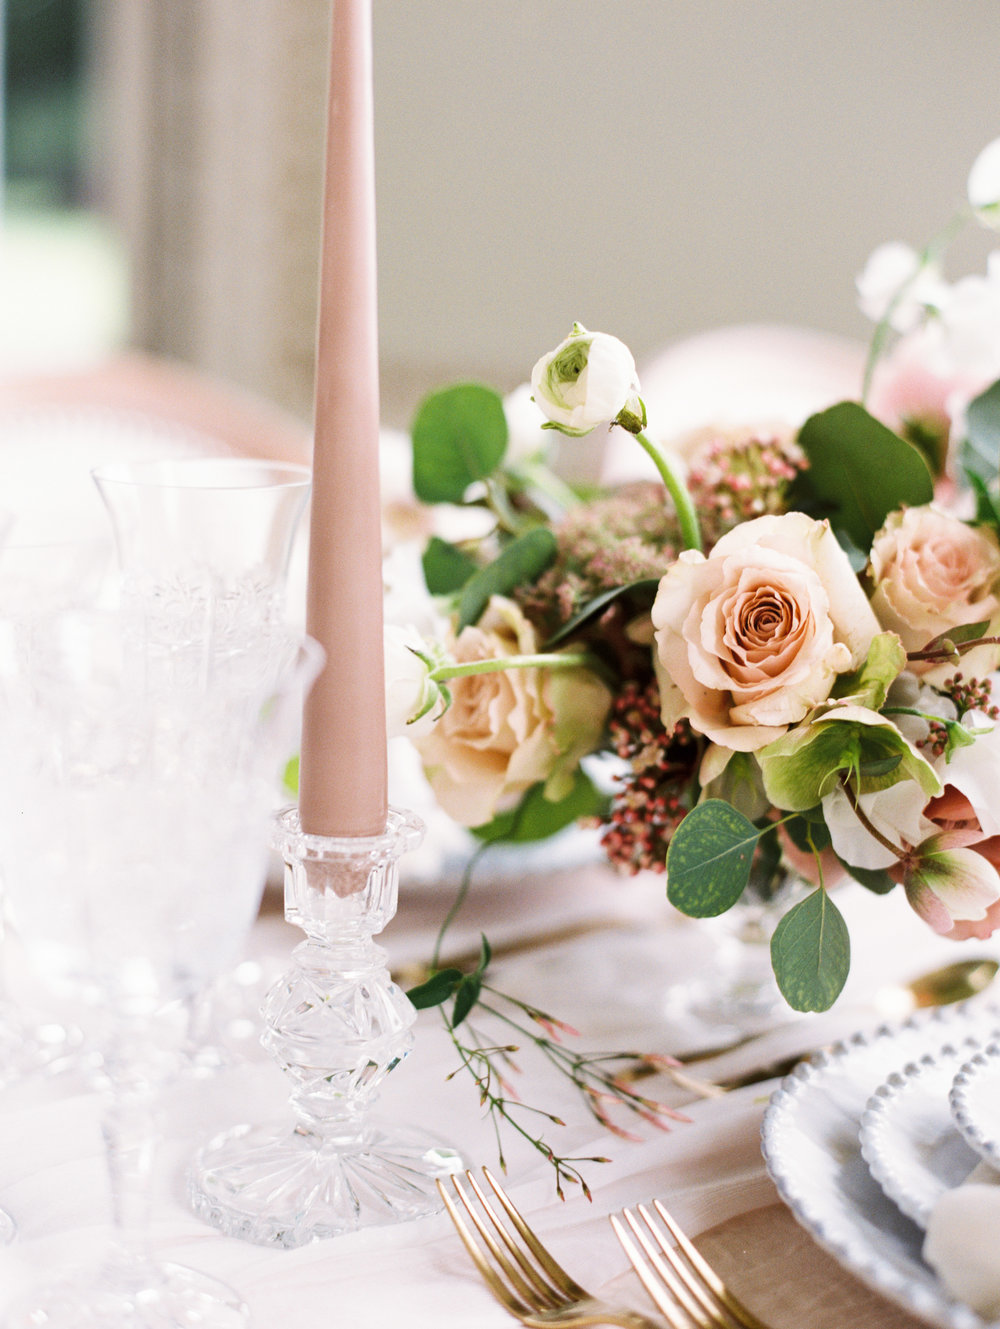 The Timeless Stylist-Elegant and Romantic Wedding Styling-Cut Glass Candlesticks.jpg